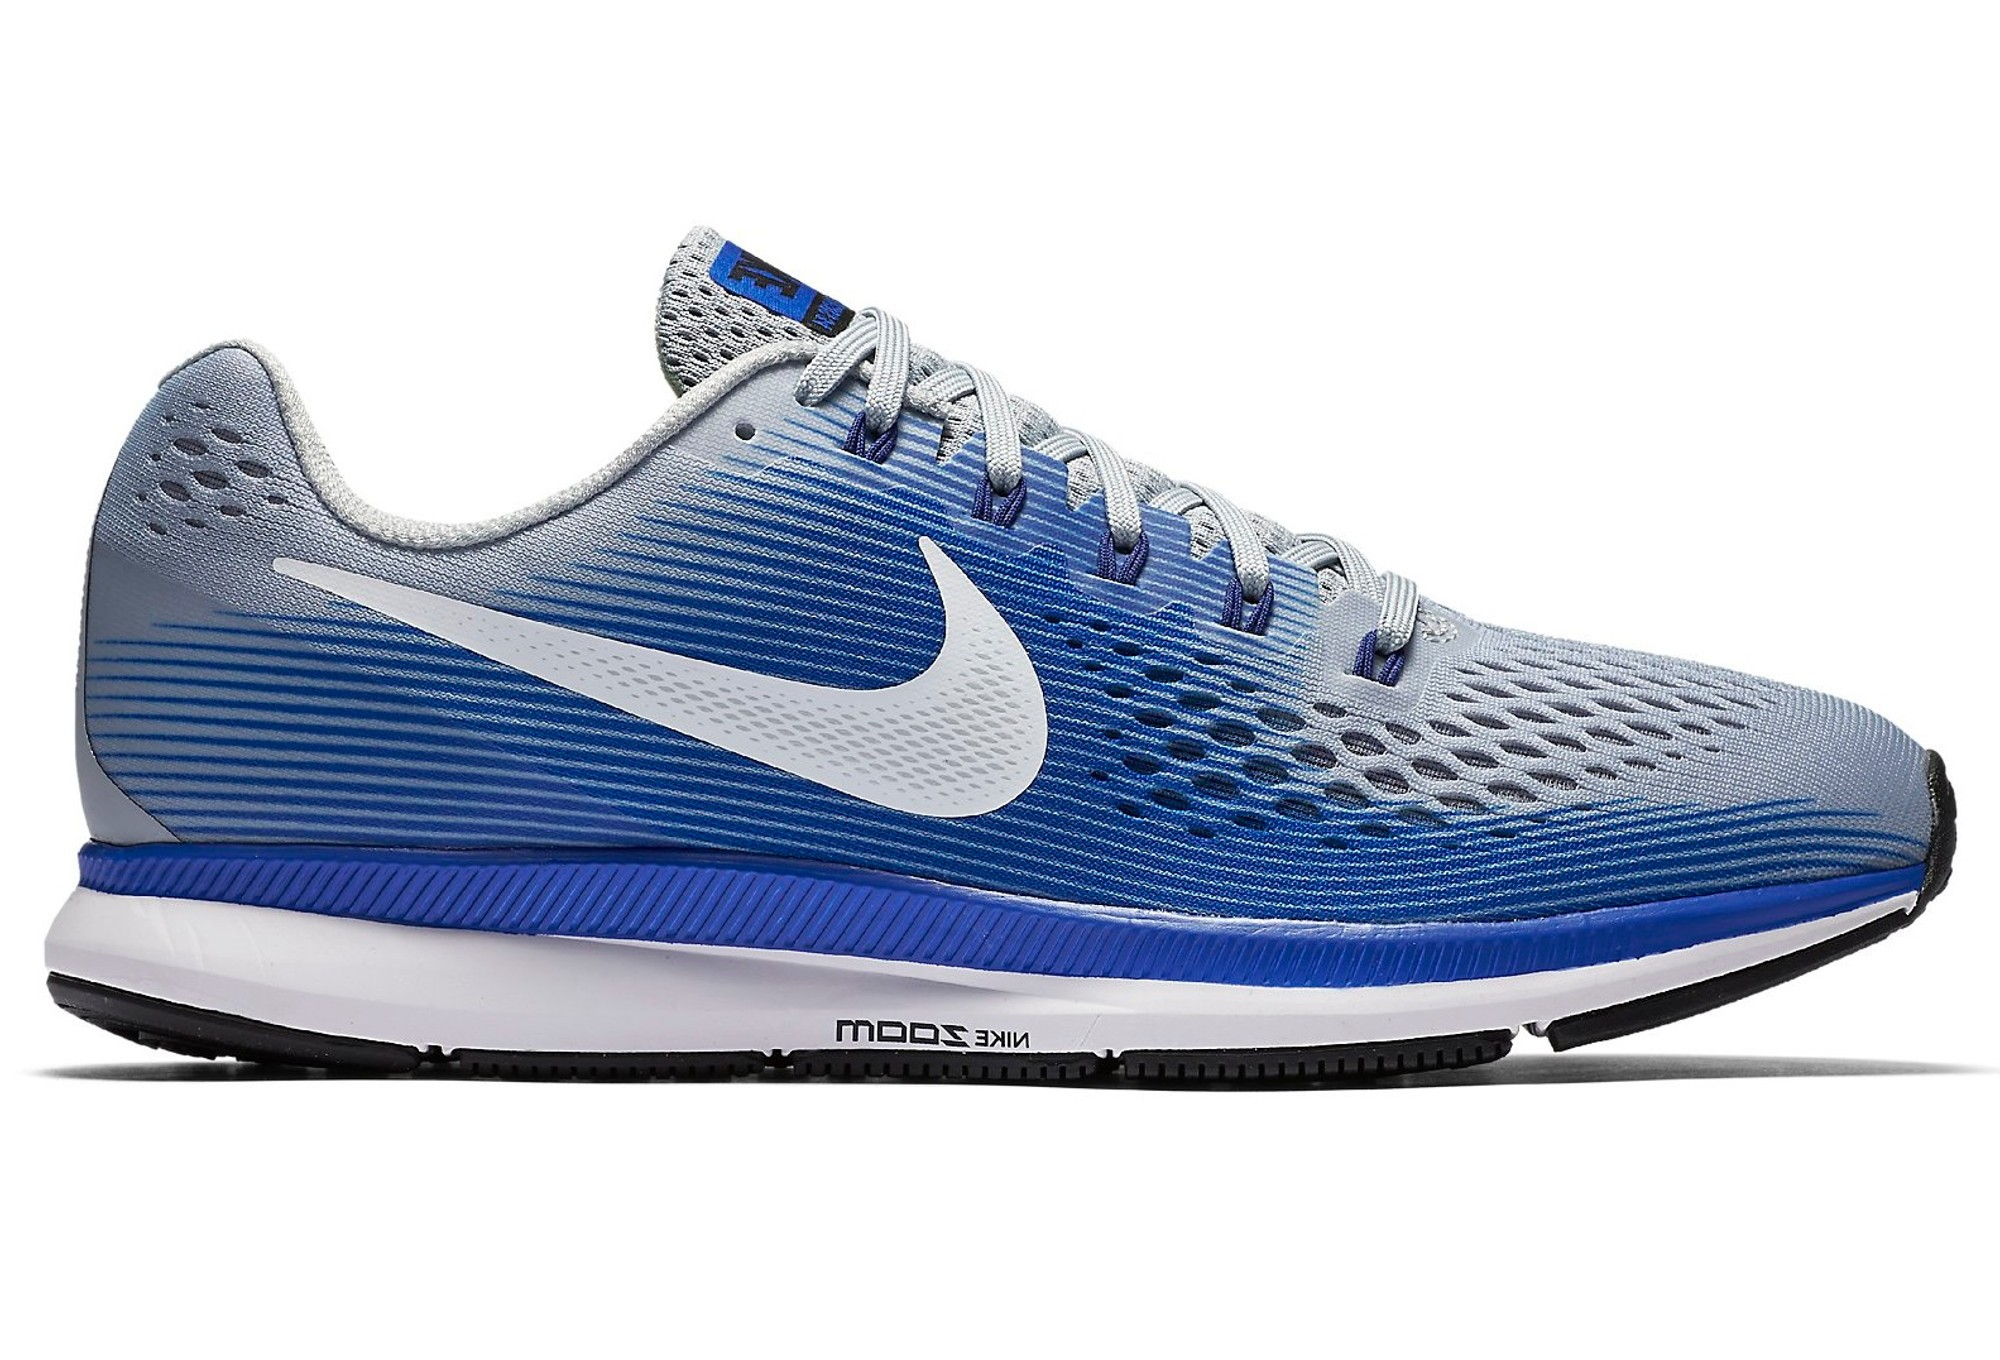 De Pour Hommes Nike Chaussures Pegasus Running 34 wPkN8Zn0OX